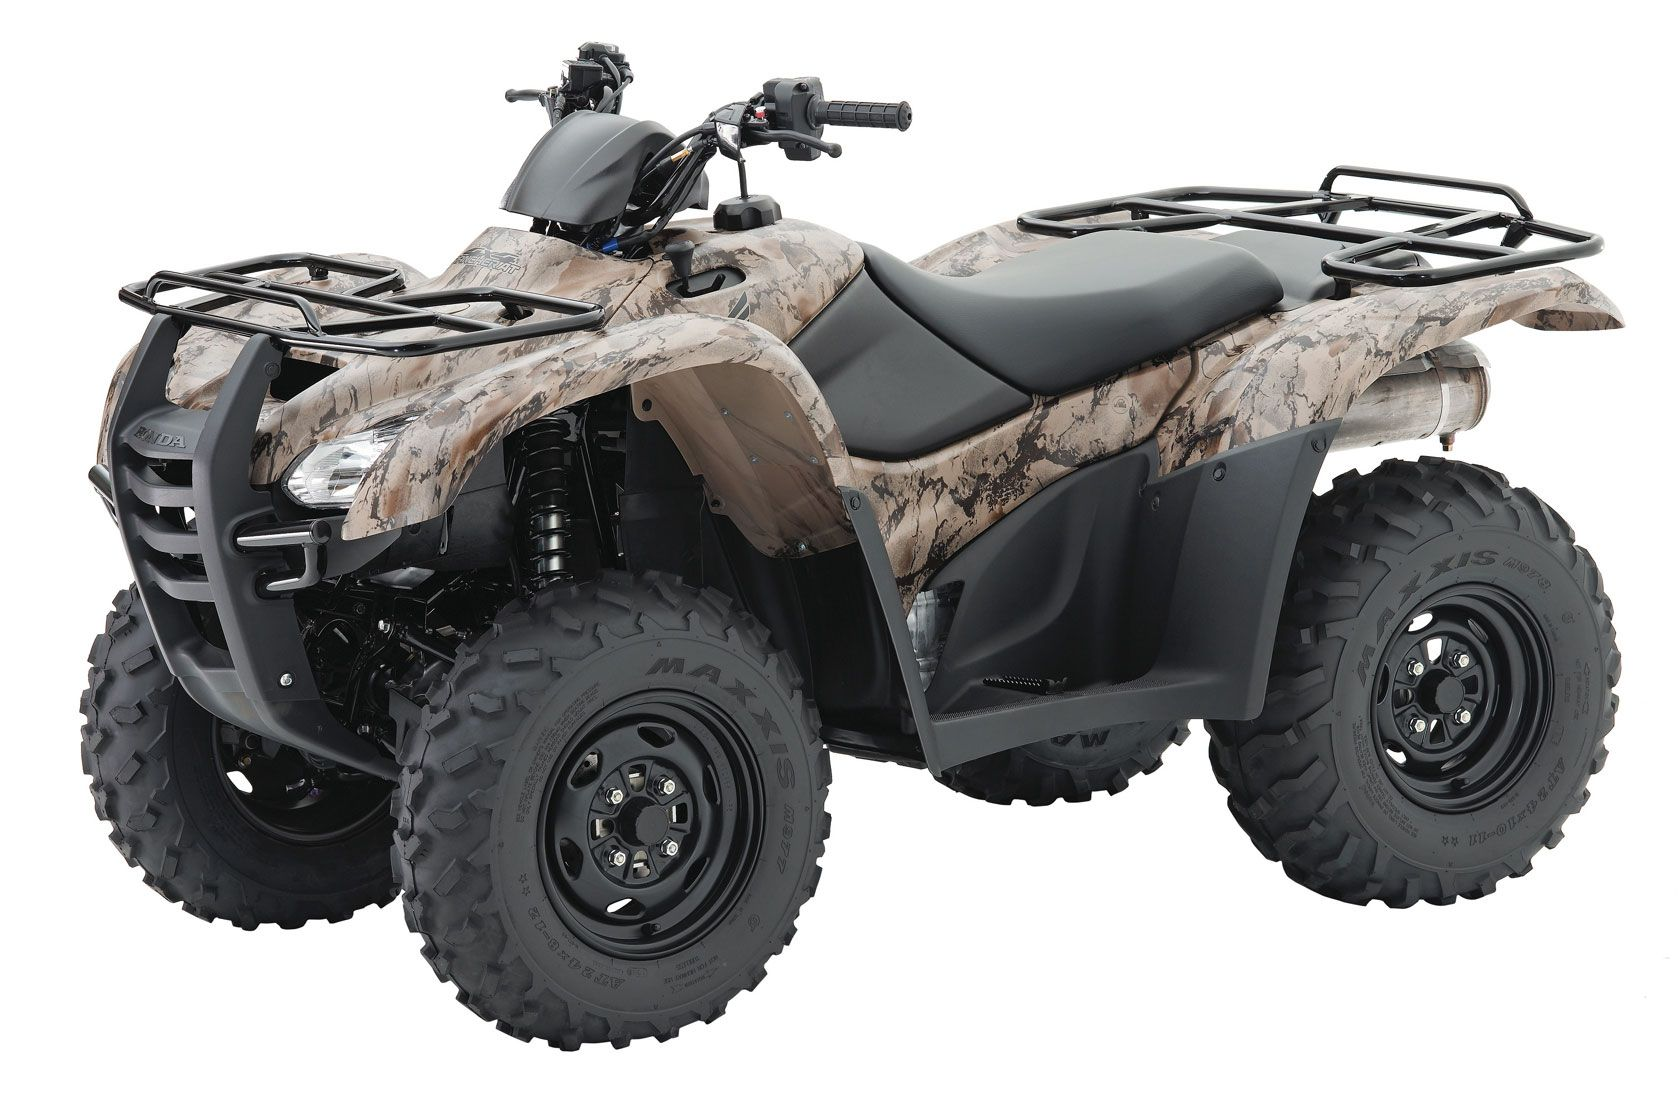 Used Honda Four Wheelers For Sale >> Four Wheelers Pictures Camouflage Honda Rancher 420 Four